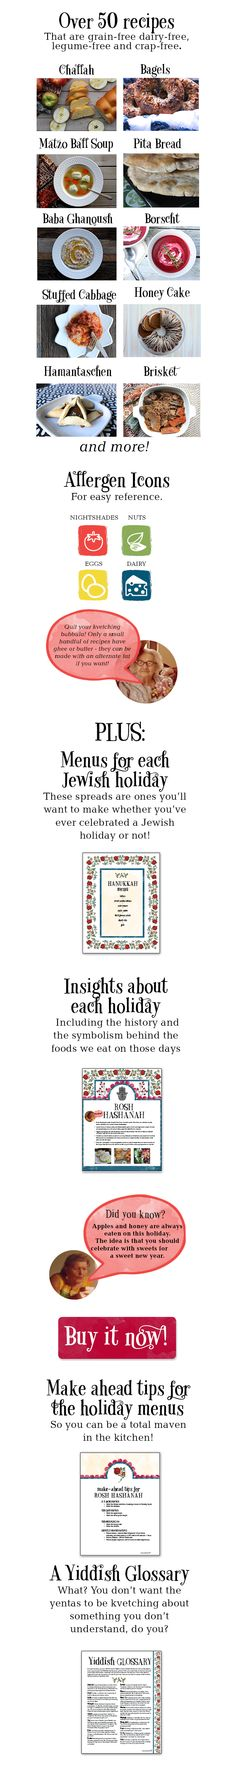 Yiddish Kitchen | Grain Free Jewish Recipes for the Holidays and Everday ~ an E-book